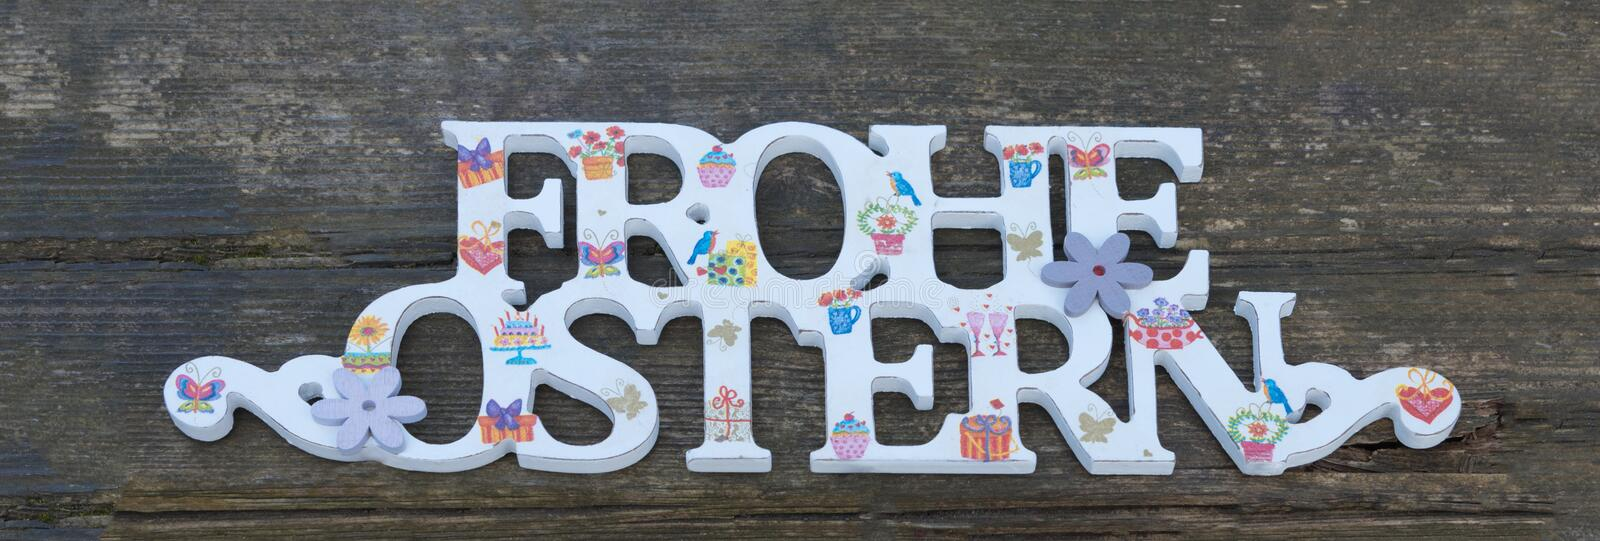 Congratulation Happy Easter in German. Decorated letters on wooden rustic background. Congratulation Happy Easter in German. Decorated letters, text on wooden stock images